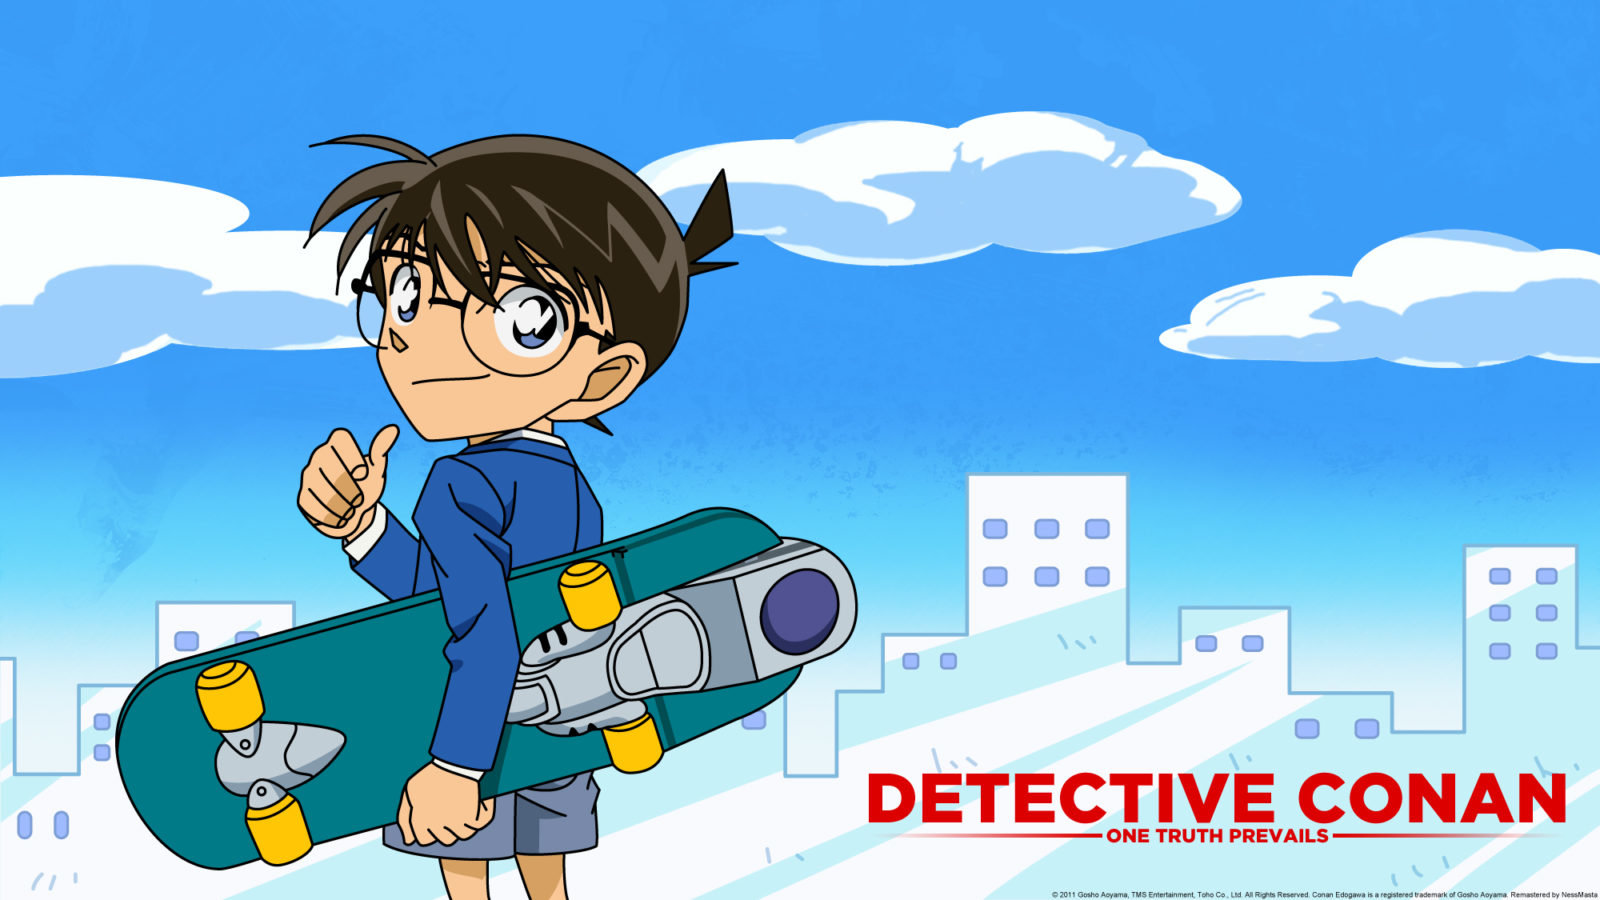 Download hd 1600x900 Detective Conan desktop background ID:457557 for free